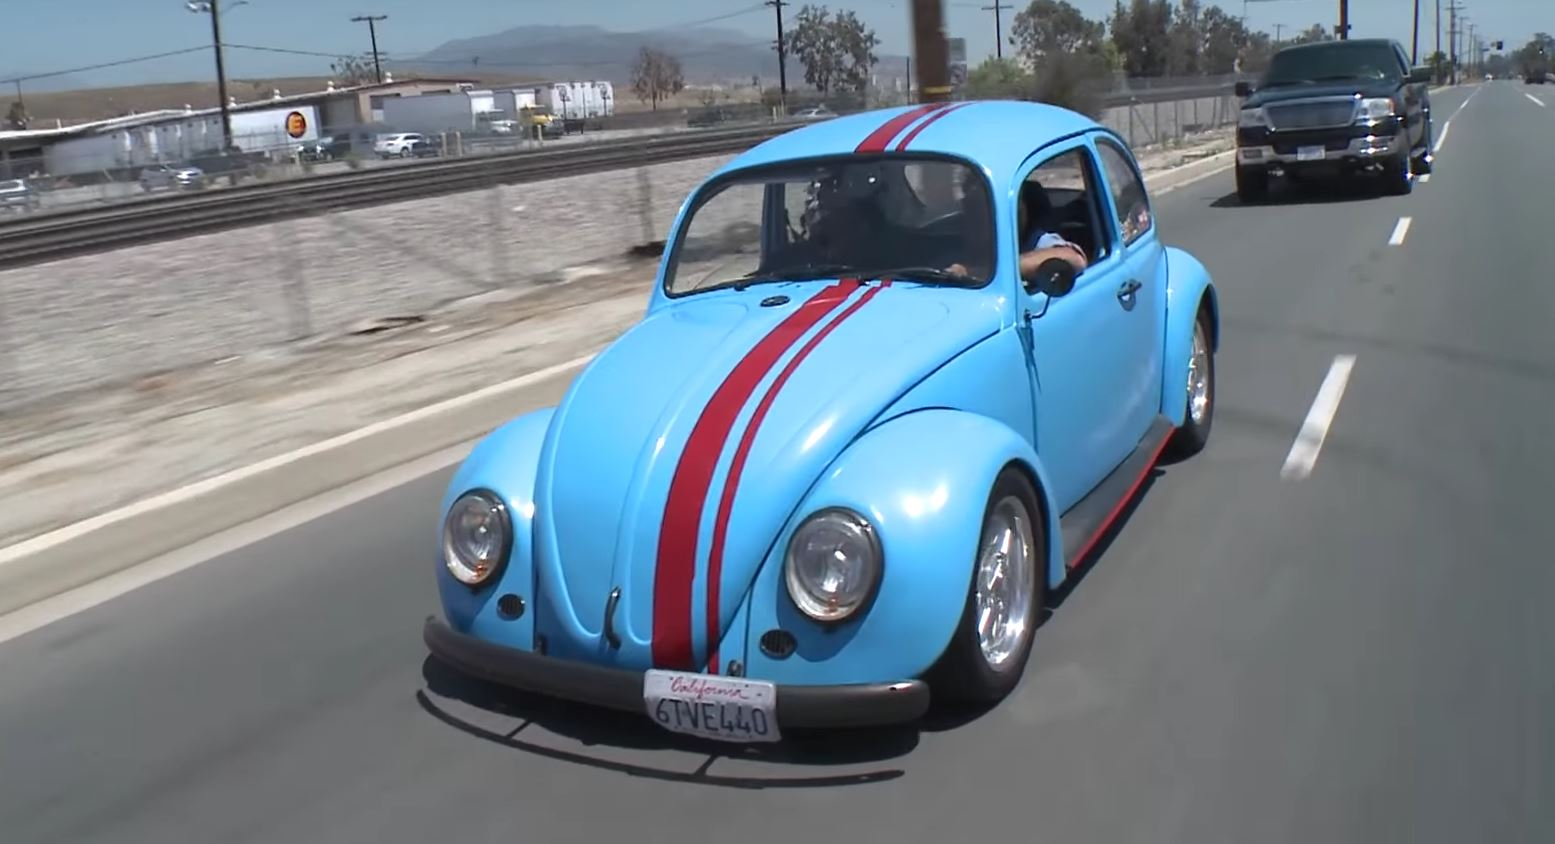 Jay Leno Checks out VW Beetle with RX-7 Rotary Engine - autoevolution